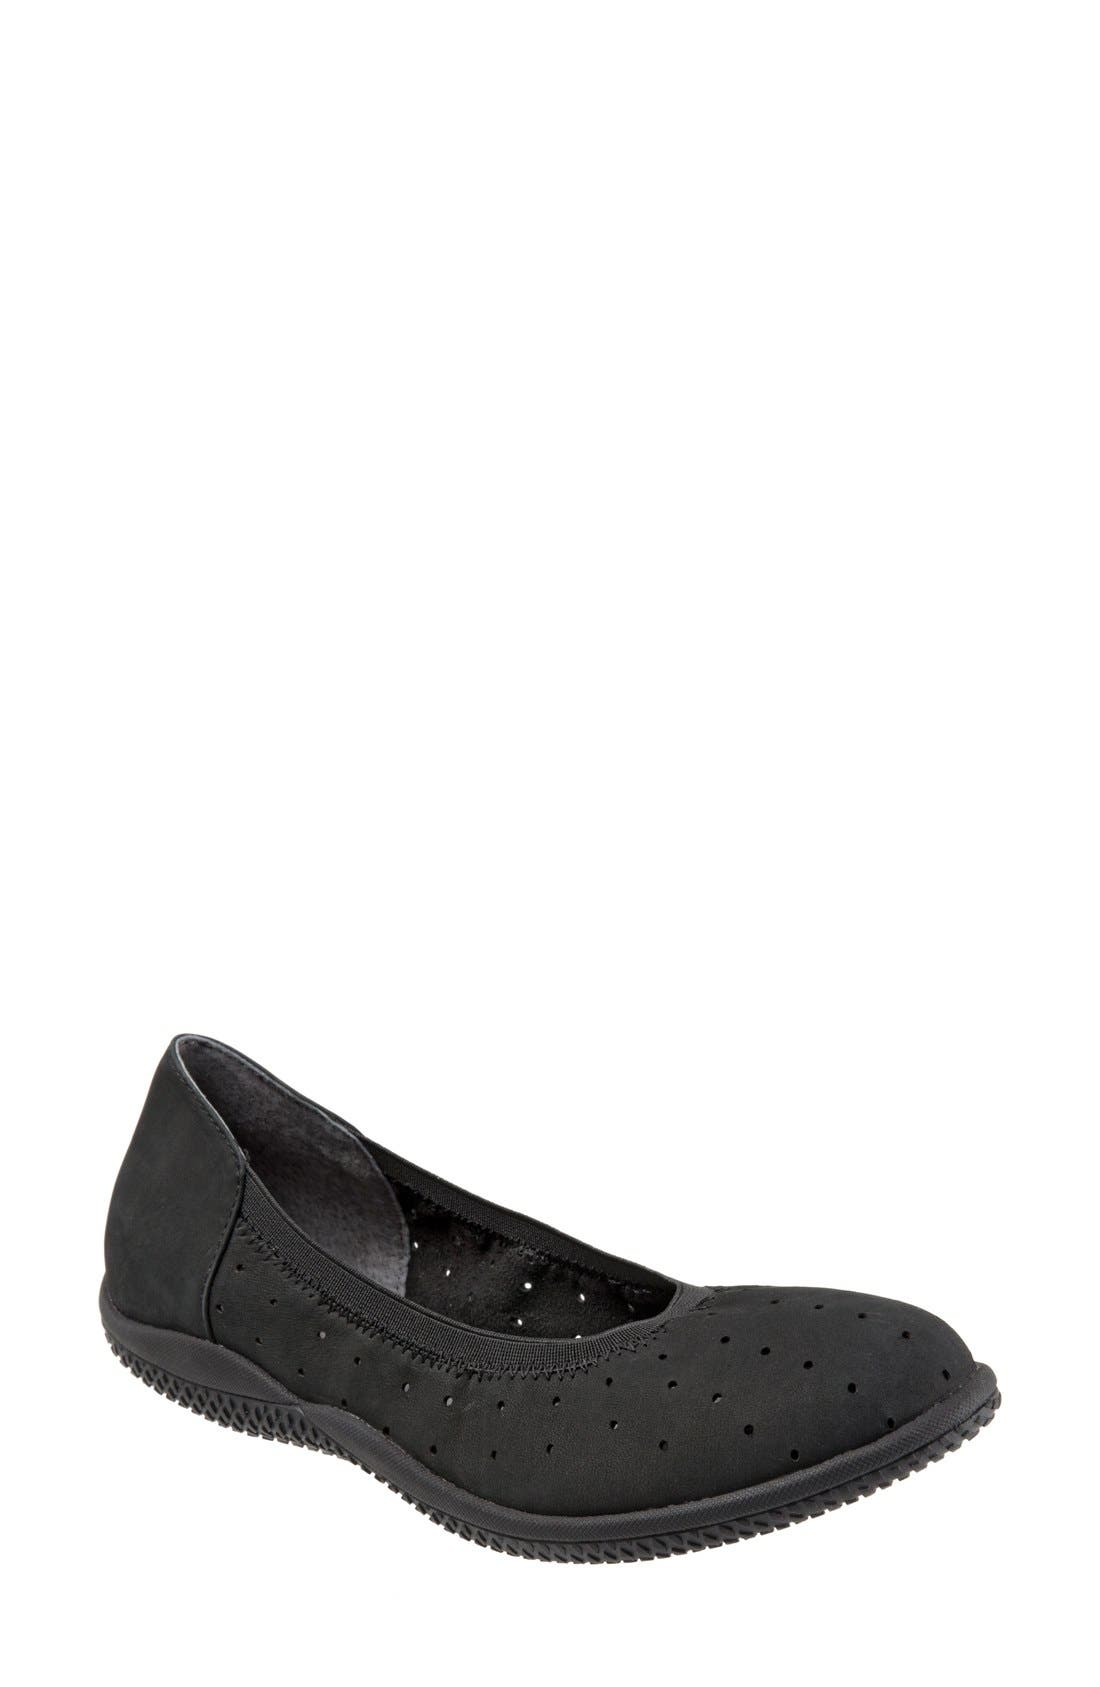 'Hampshire' Dot Perforated Ballet Flat,                             Main thumbnail 1, color,                             Black Nubuck